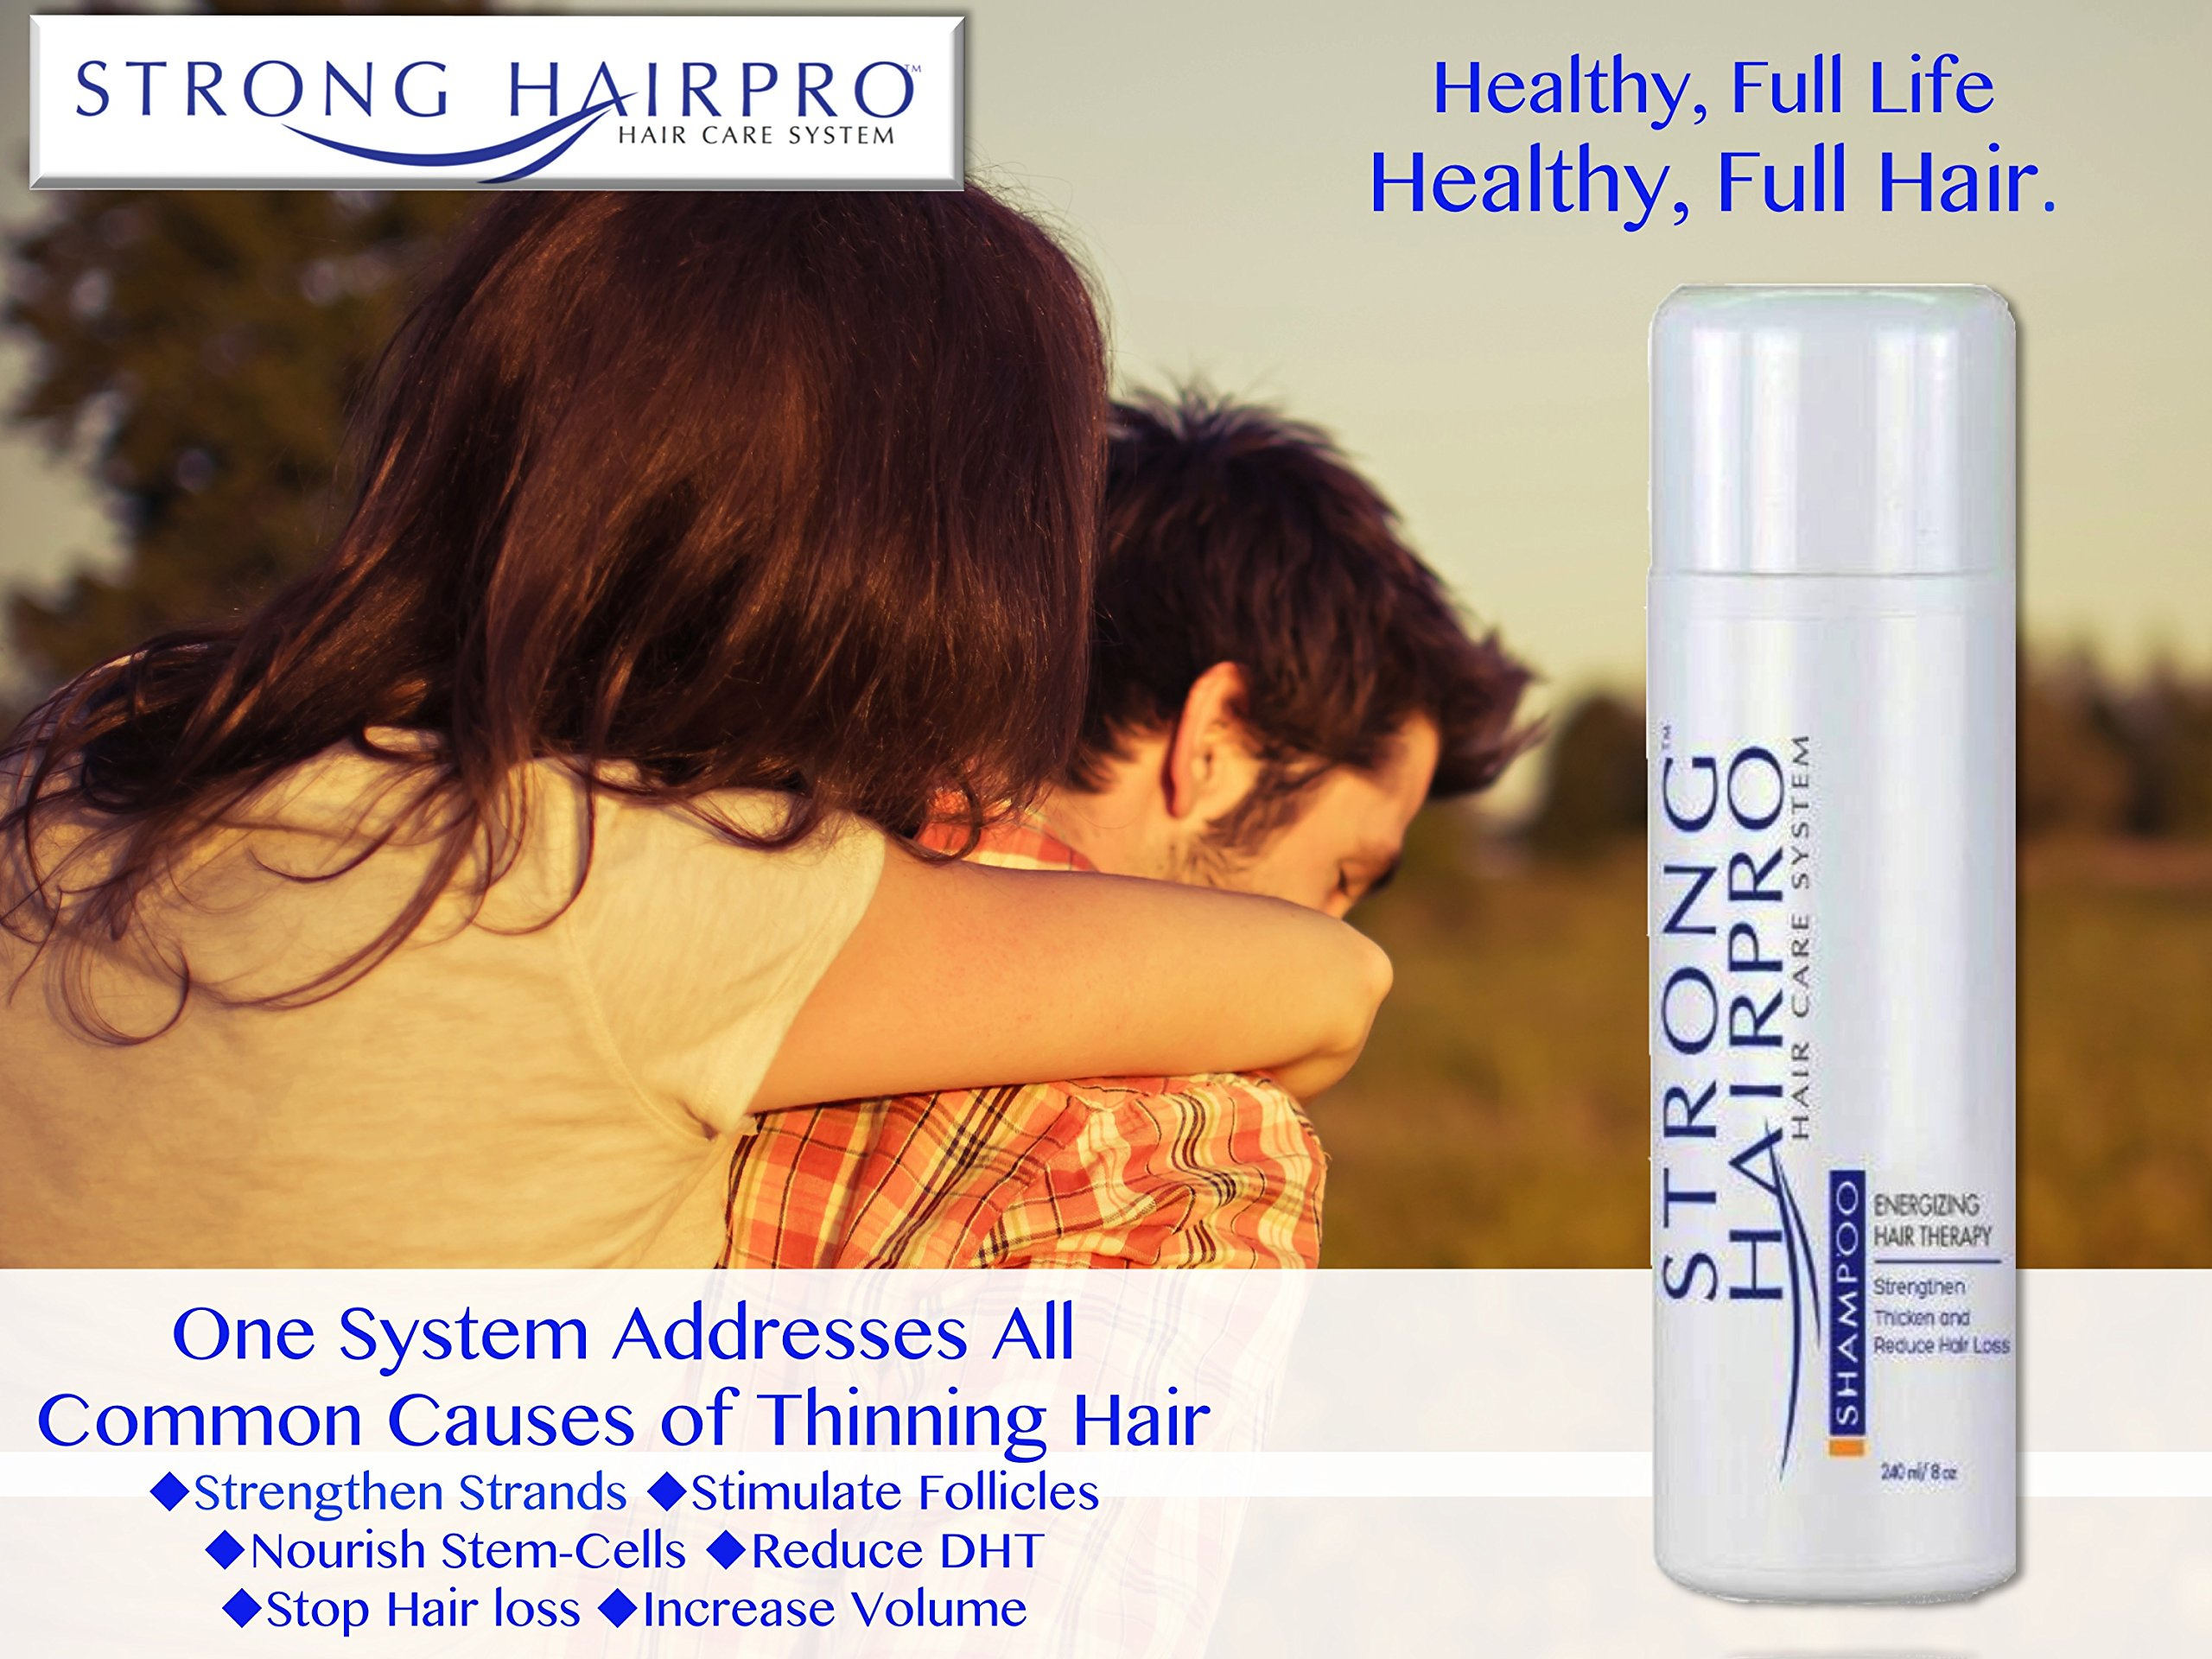 Strong HairPro New Hair Strengthening and Growth Stimulating Peptide Shampoo for Hair Loss Prevention with Caffeine, 8 Fluid Ounce by Strong HairPro (Image #2)